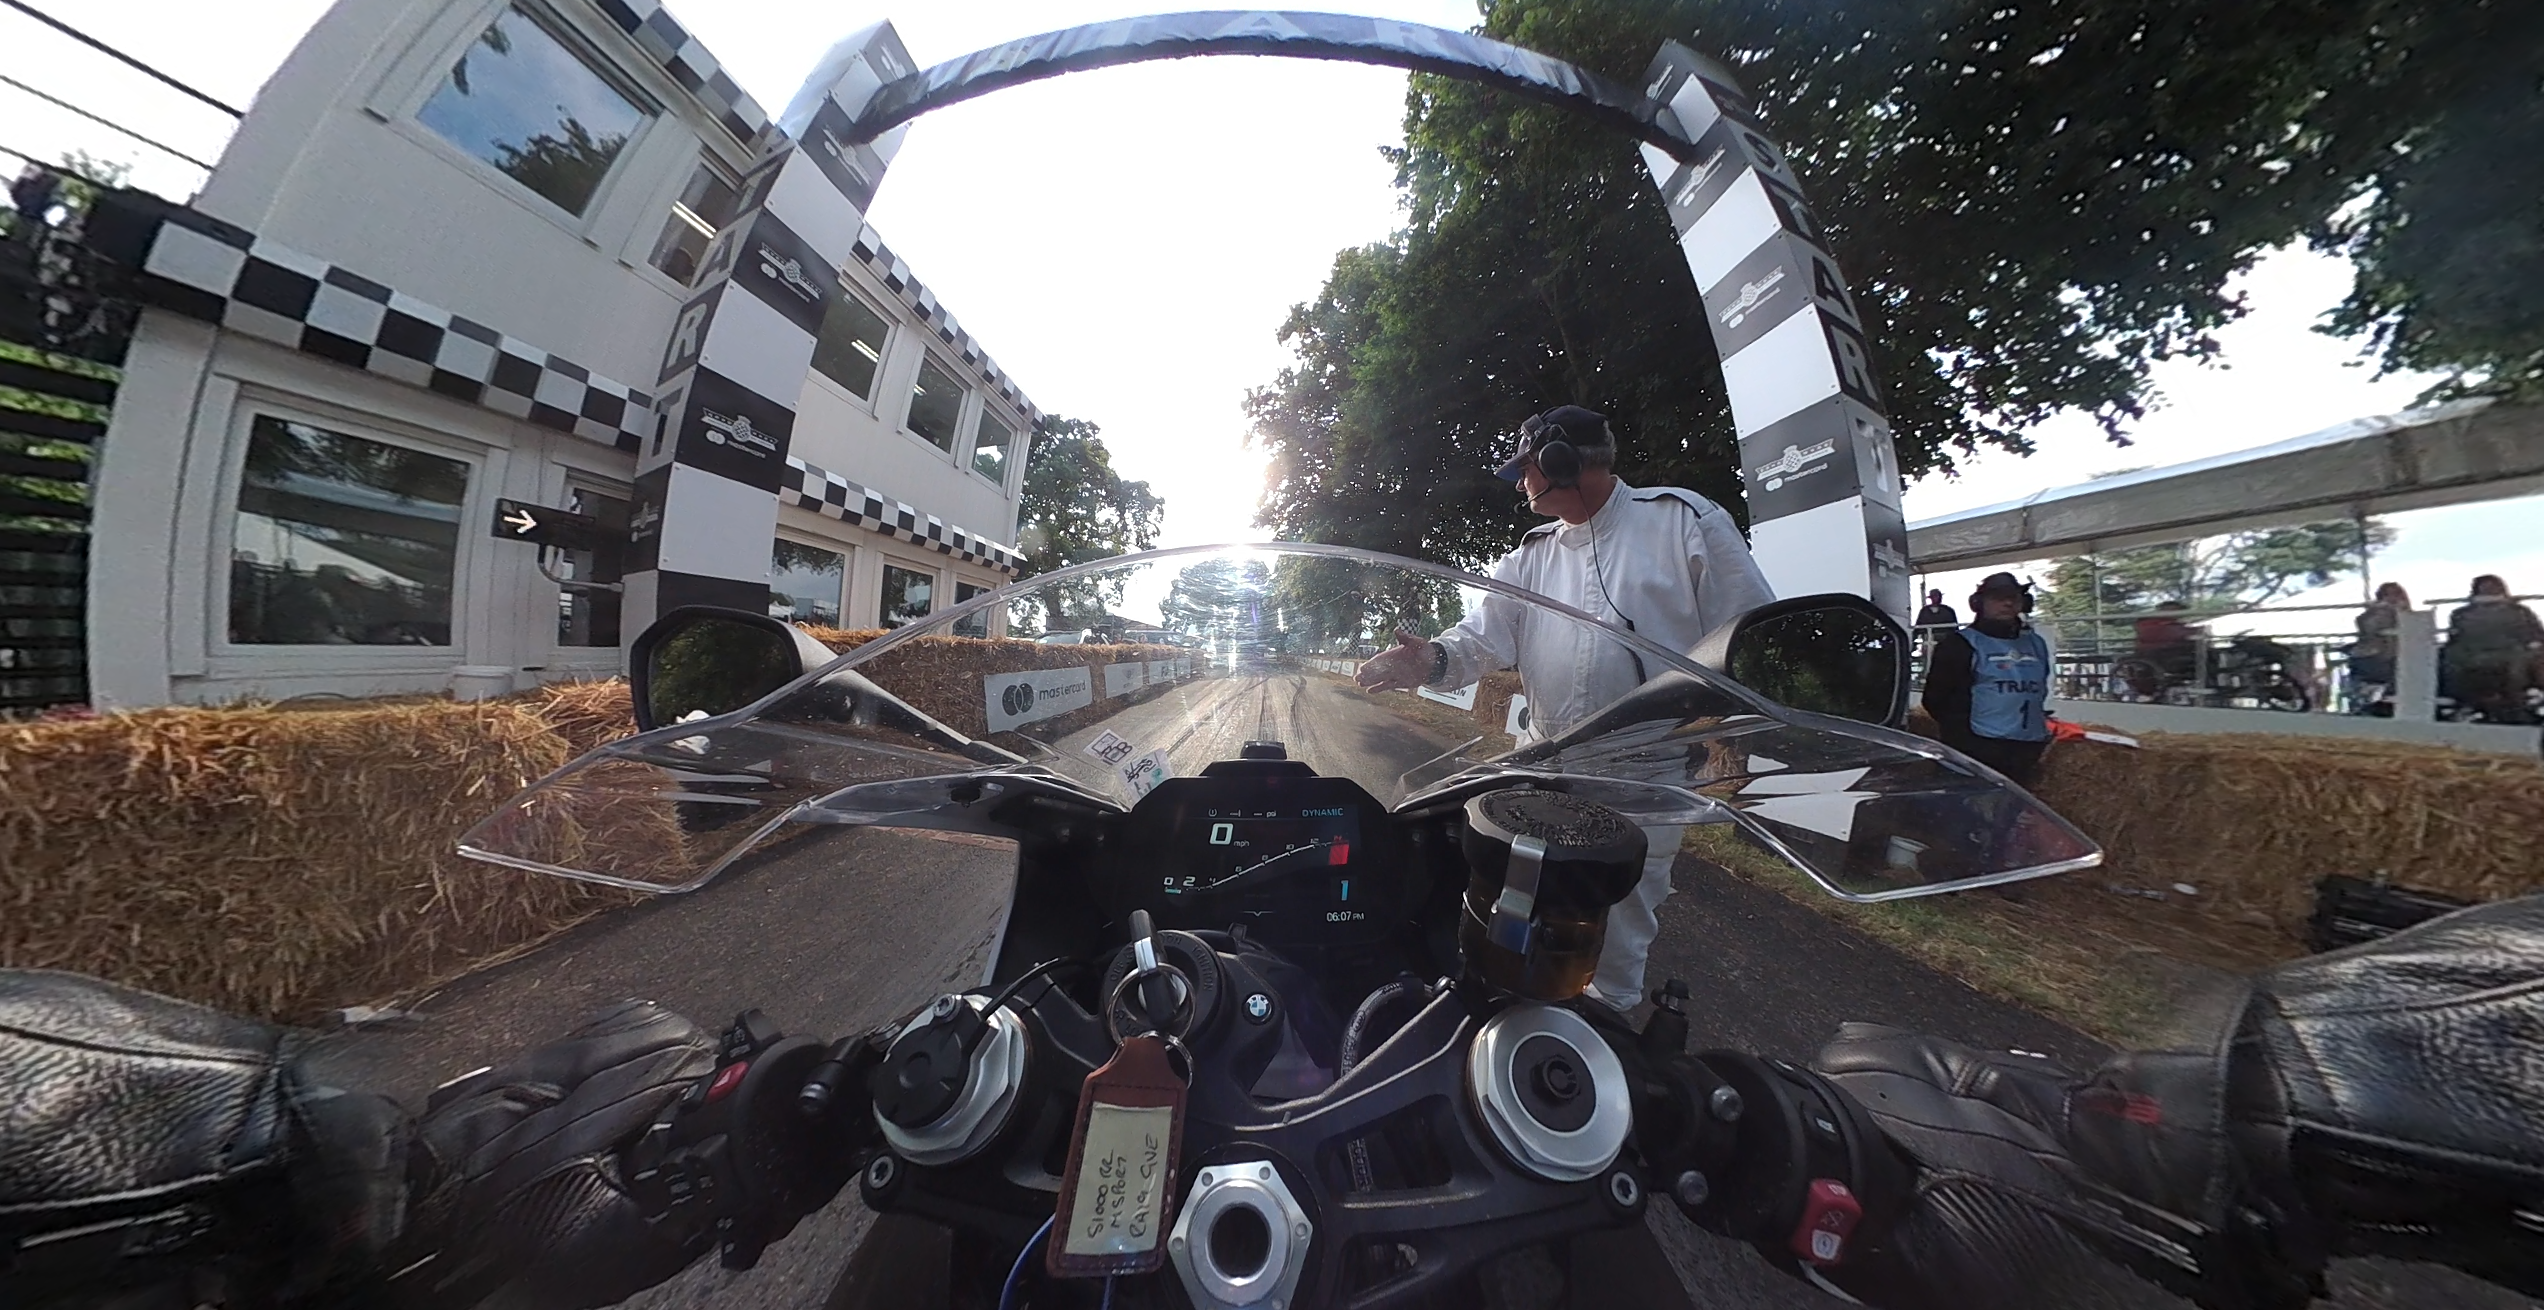 Watch Bmw S1000rr Goodwood Festival Of Speed 360 Vid